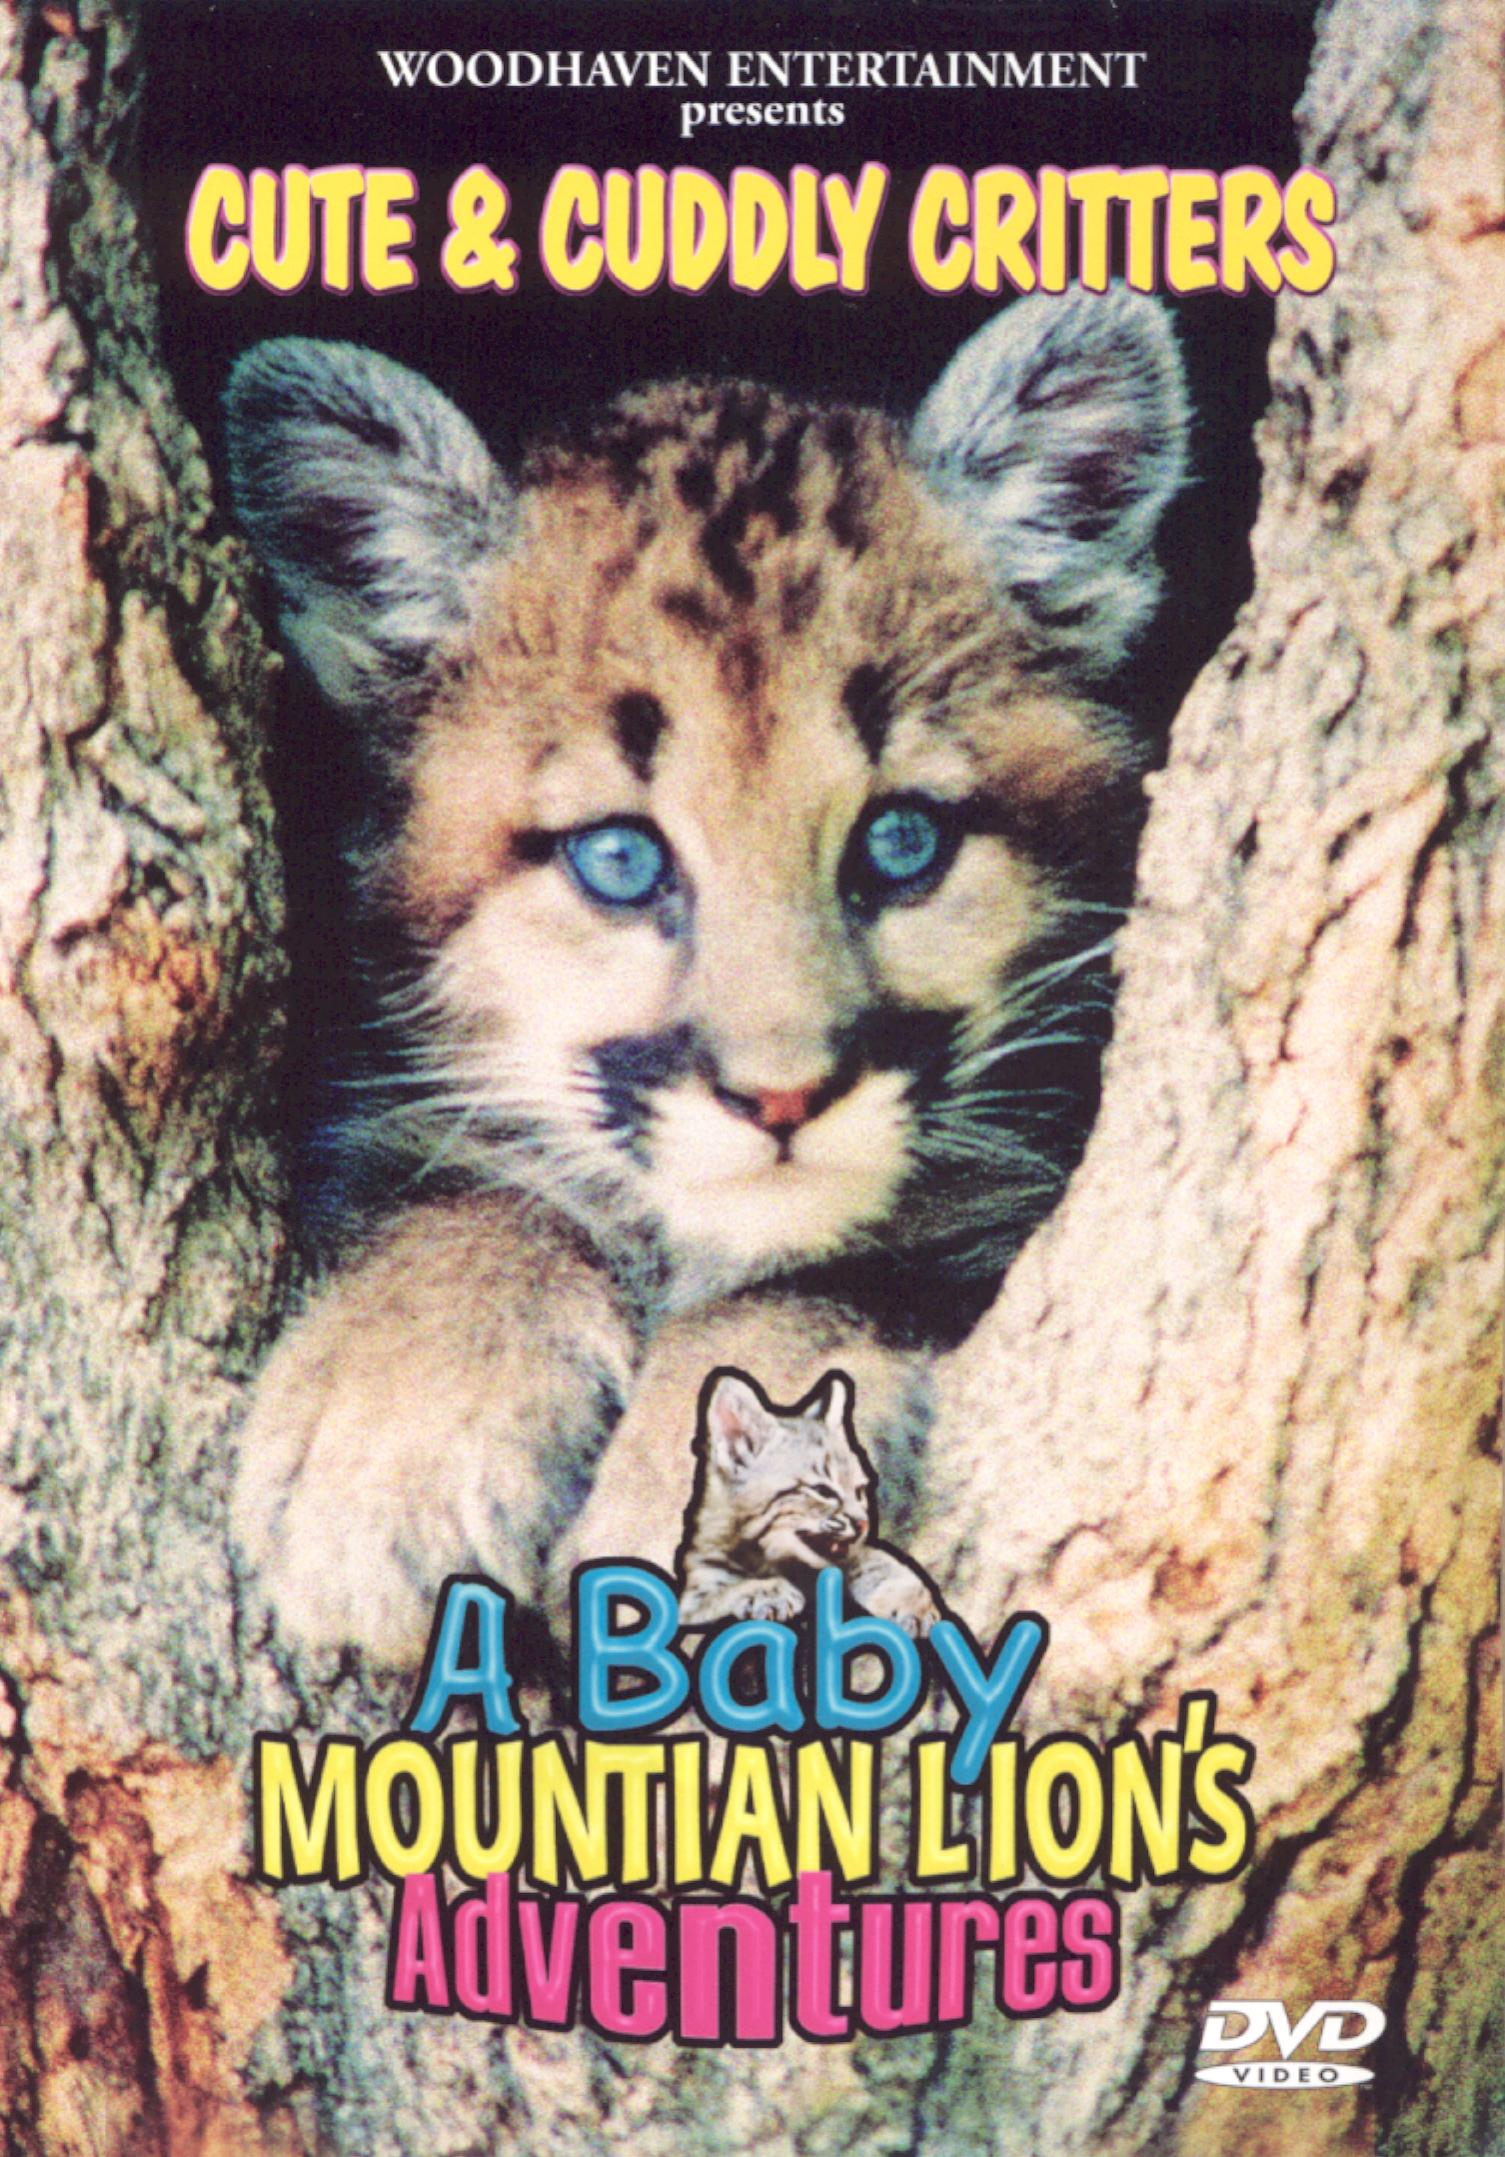 Cute and Cuddly Critters: A Baby Mountain Lion's Adventures